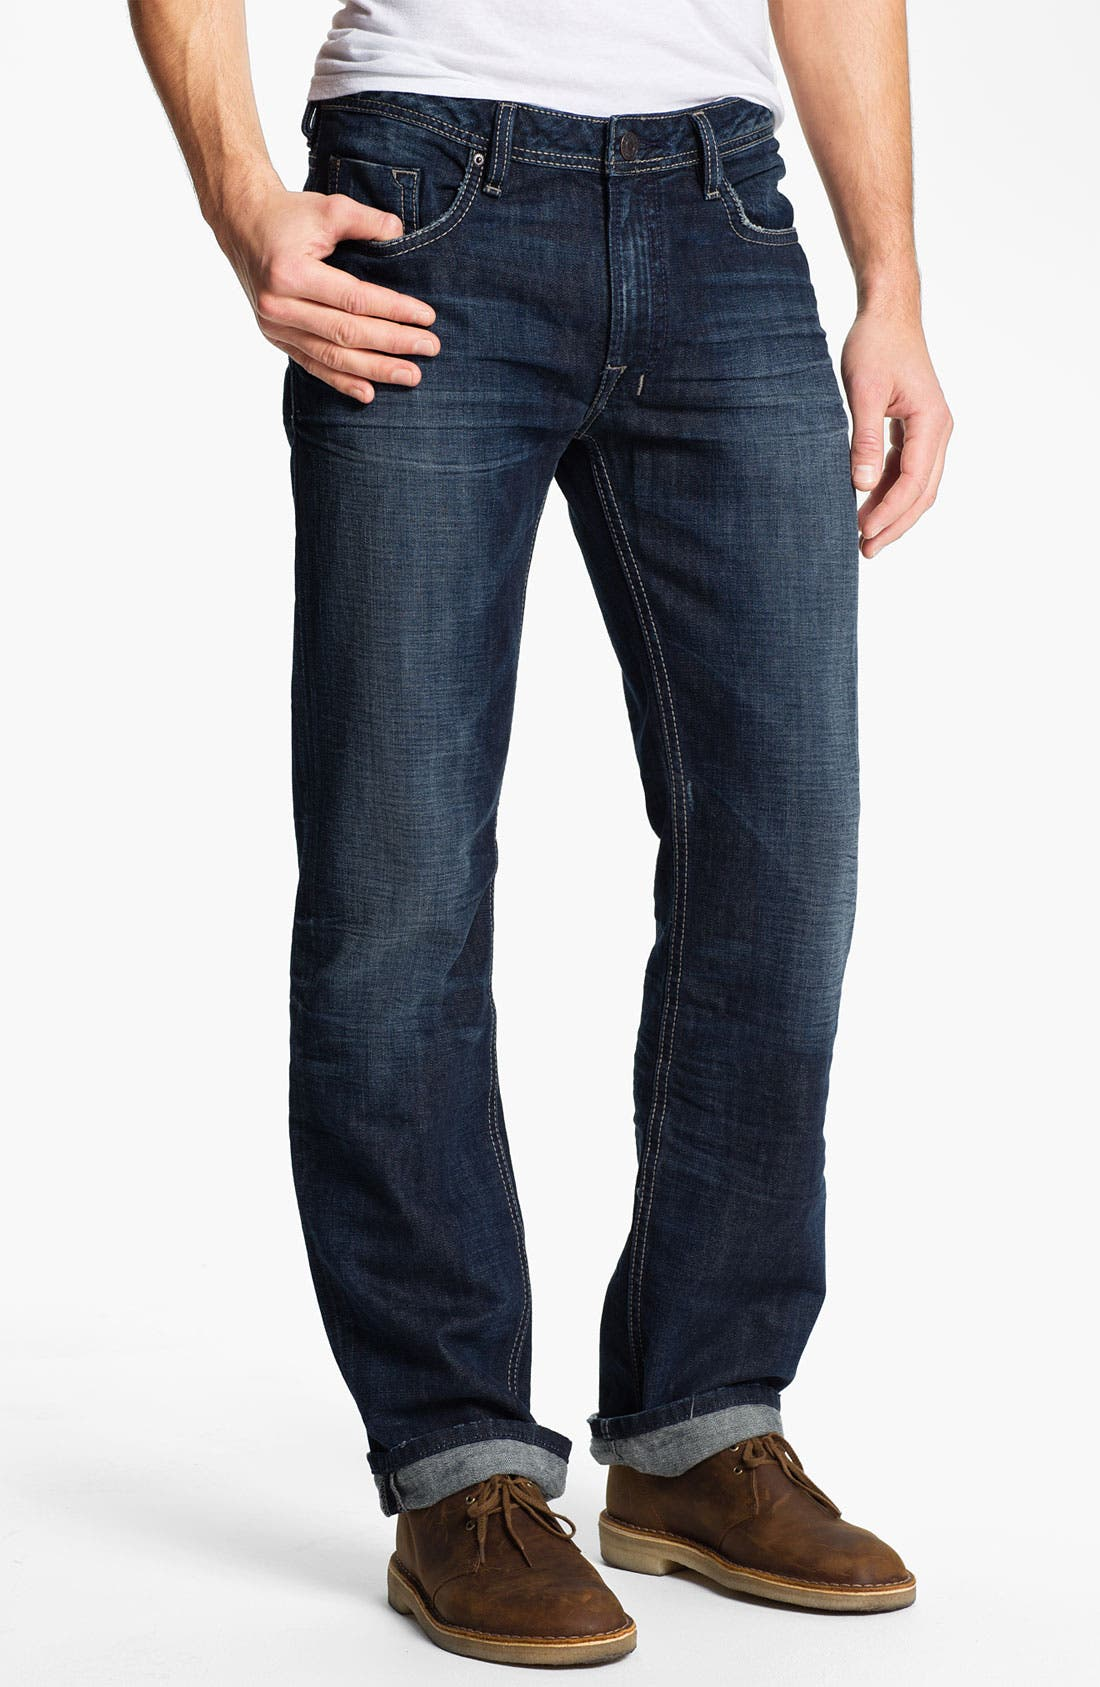 Alternate Image 1 Selected - Buffalo Jeans 'Driven' Straight Leg Jeans (Slightly Sandblasted)